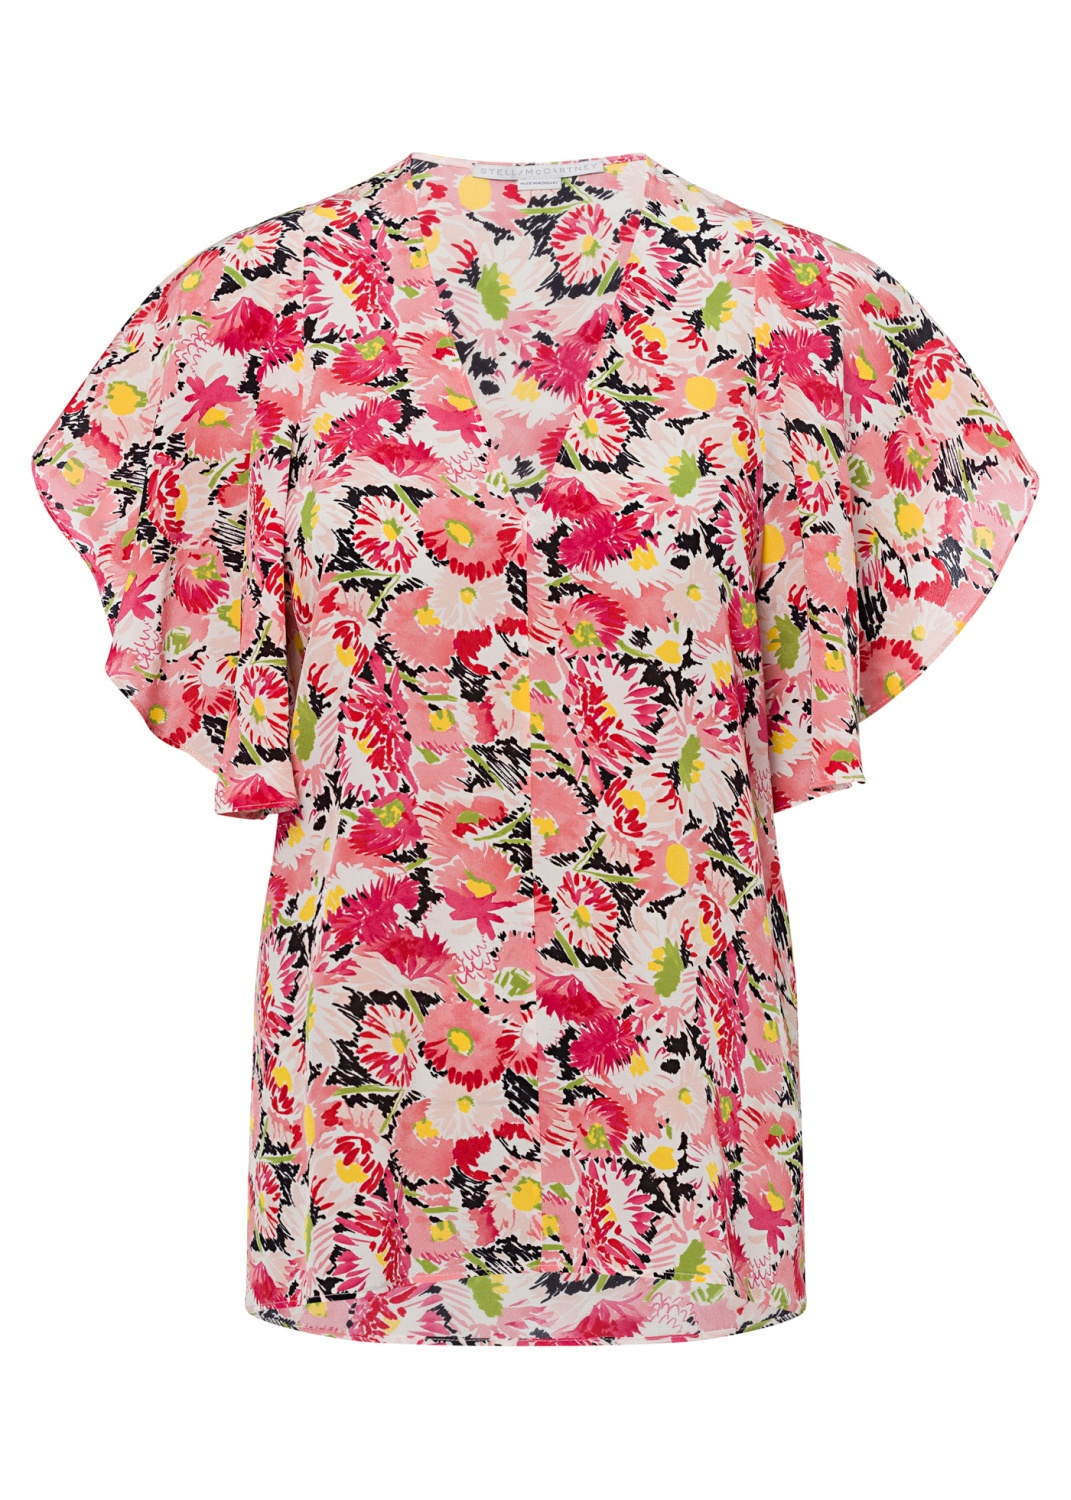 Mallory Top Watercolor Floral Silk Print image number 0